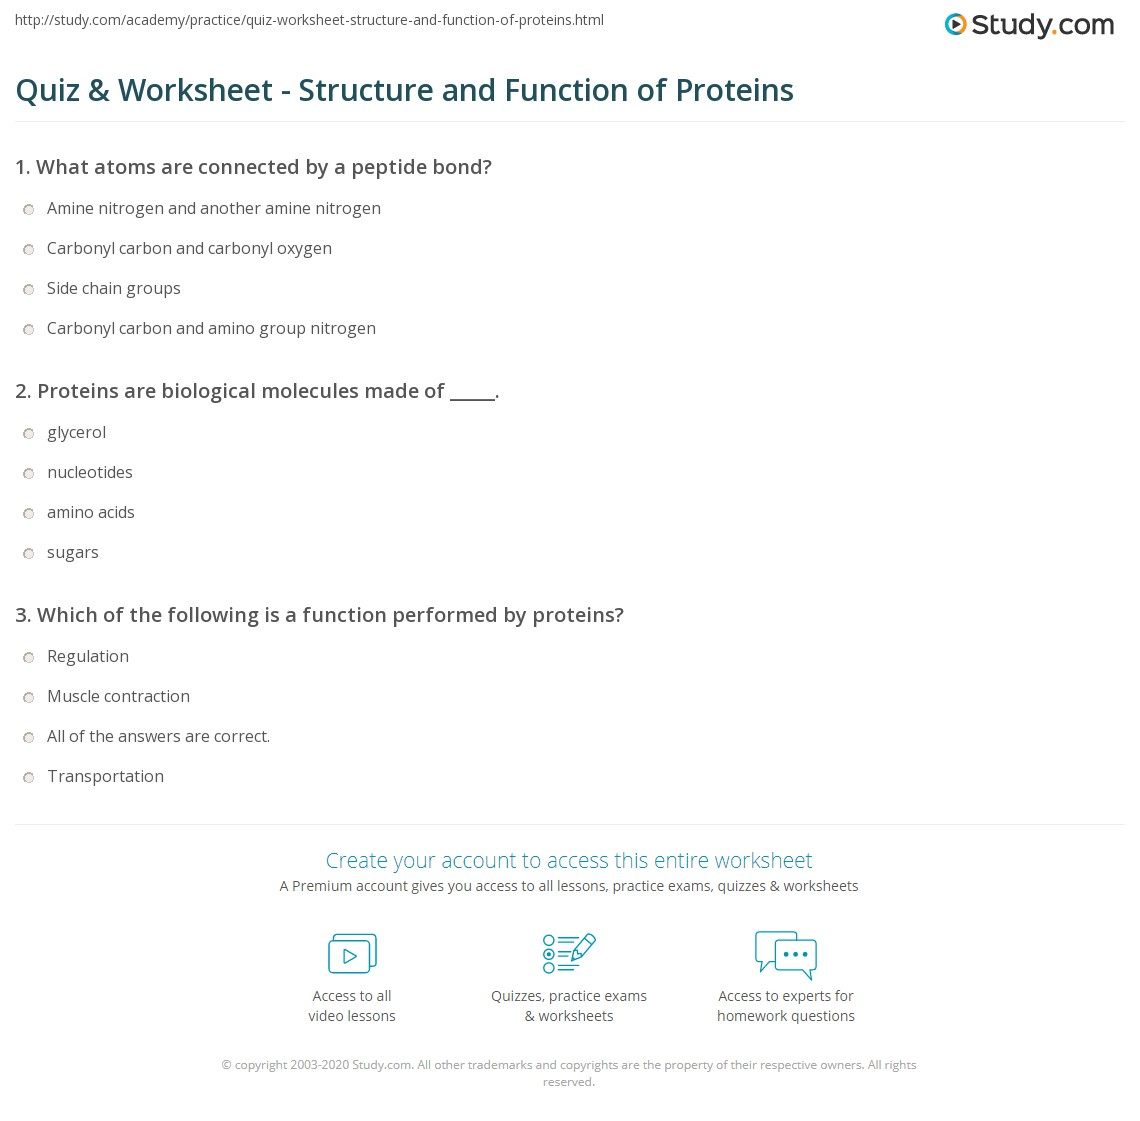 Quiz & Worksheet - Structure and Function of Proteins | Study.com